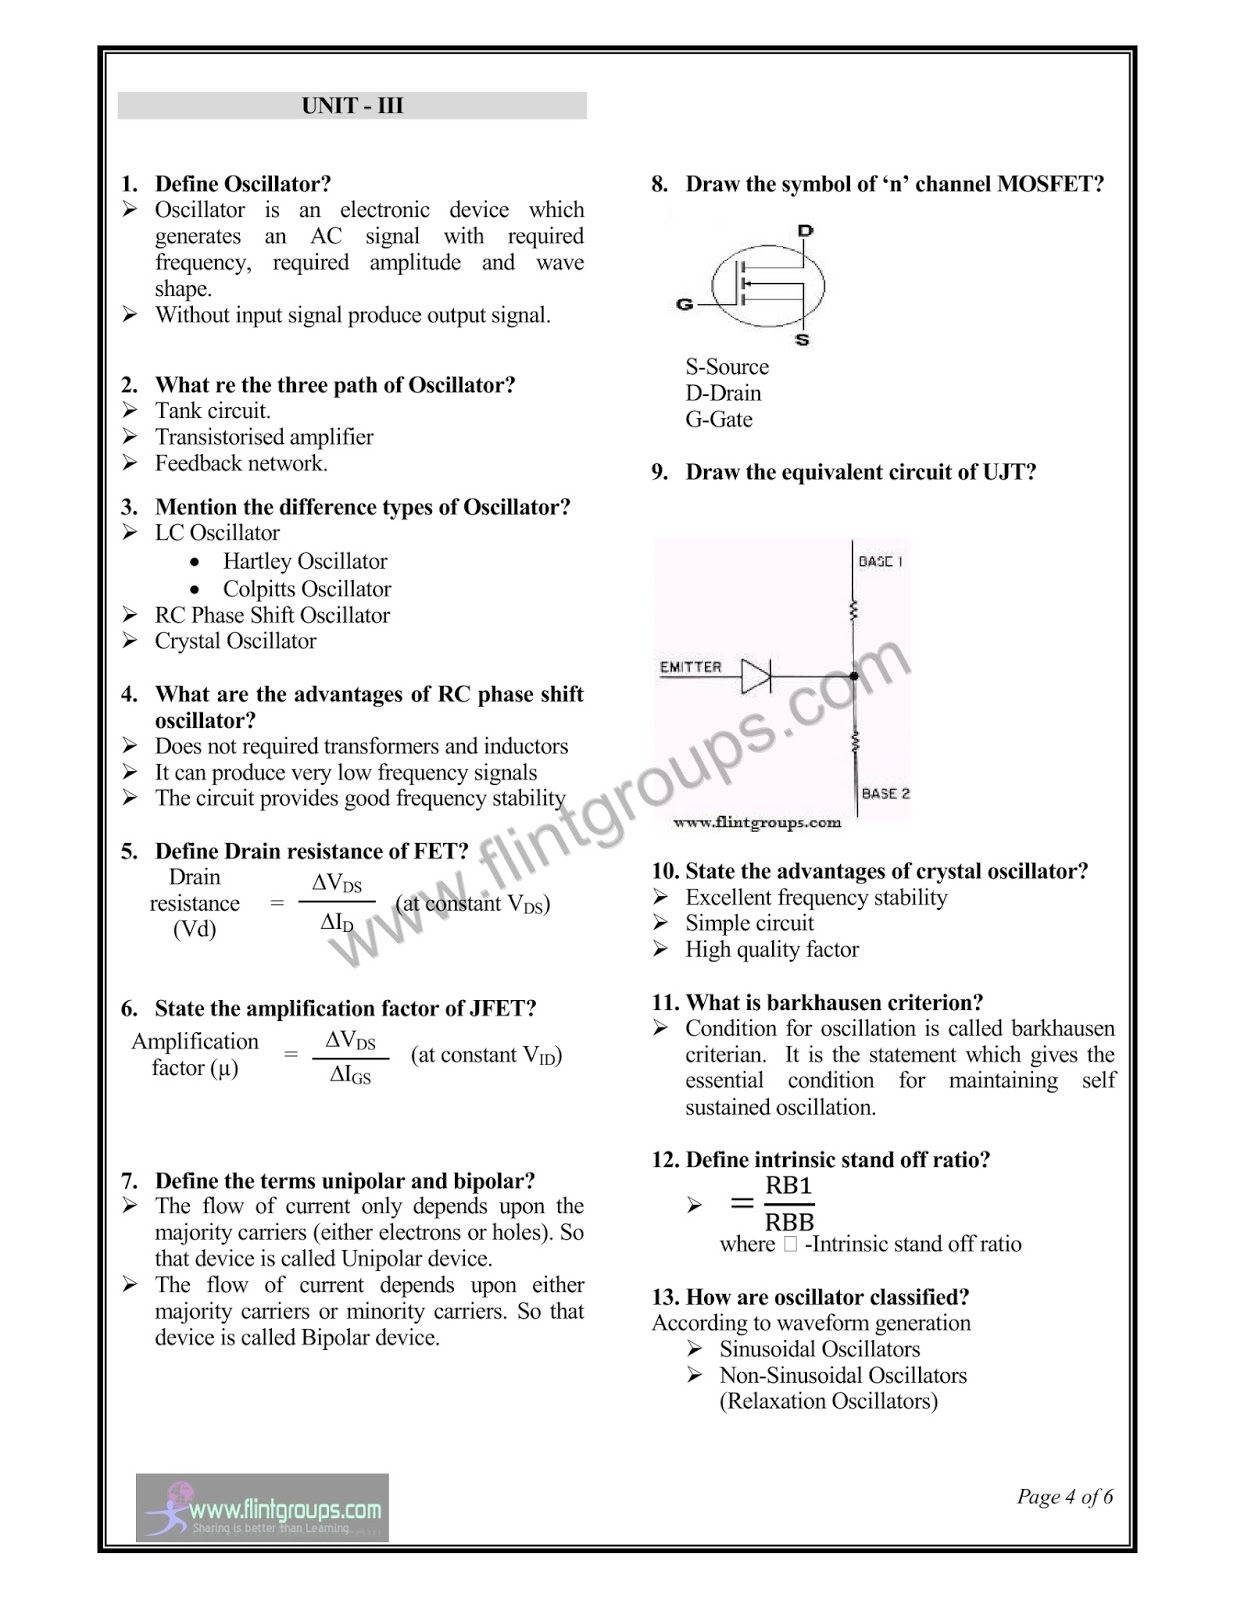 bmmf5103 answer scheme formated 1 2013 Bmmf5103 - answer scheme formatted may 2012pdf 2bmmf5103 final exam formated-moderated 1-2013pdf bmmf5103 answer scheme formated 1-2013pdf bmmf5103_jan2011pdf.